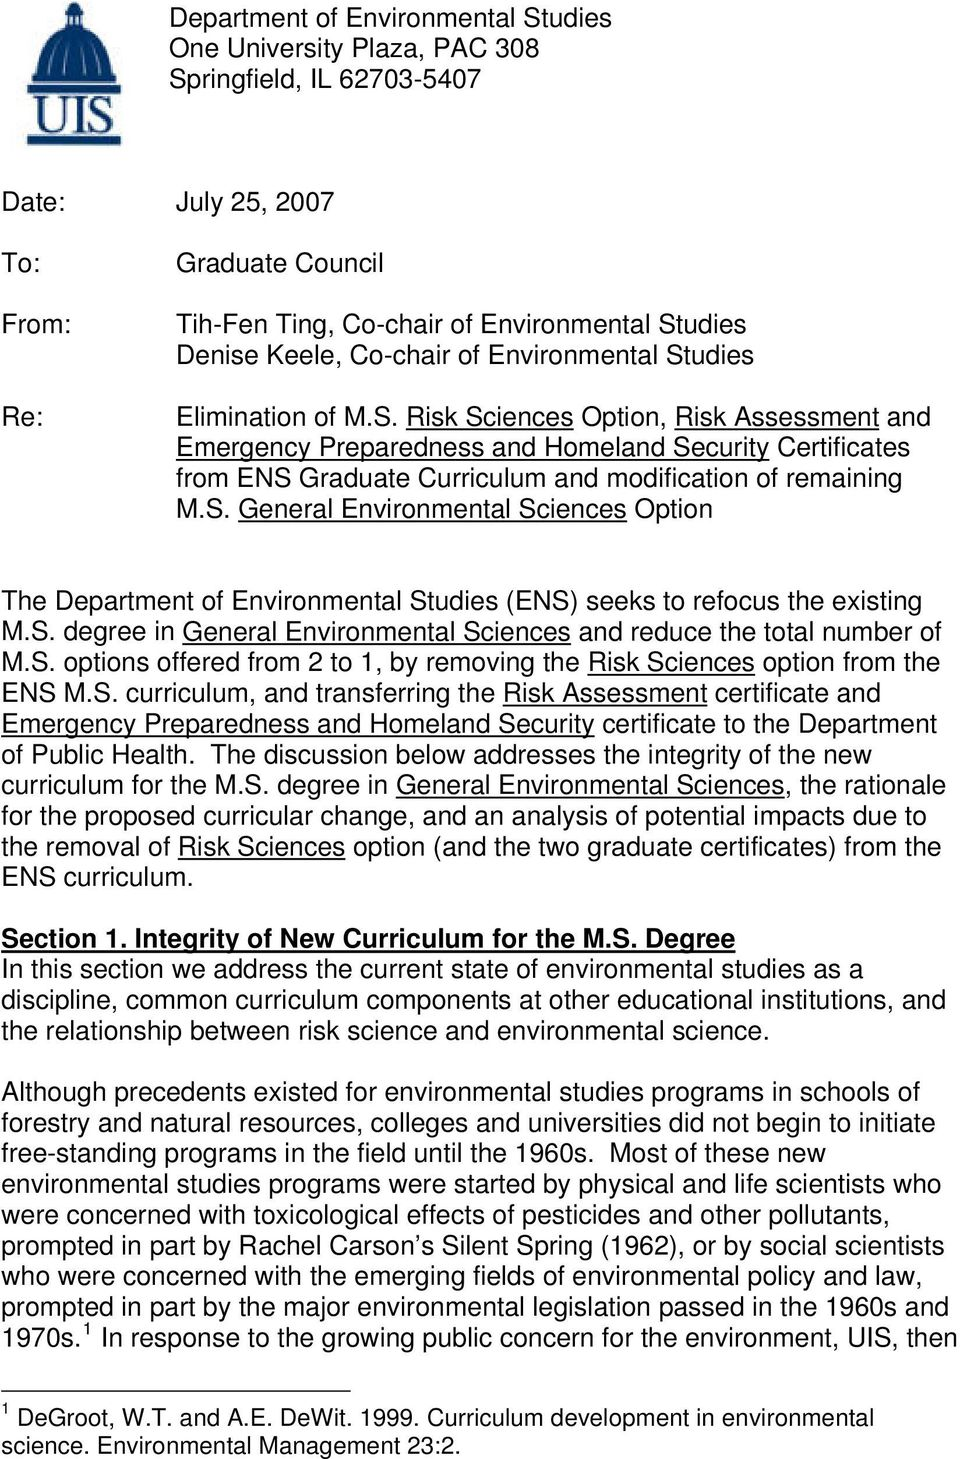 S. General Environmental Sciences Option The Department of Environmental Studies (ENS) seeks to refocus the existing M.S. degree in General Environmental Sciences and reduce the total number of M.S. options offered from 2 to 1, by removing the Risk Sciences option from the ENS M.